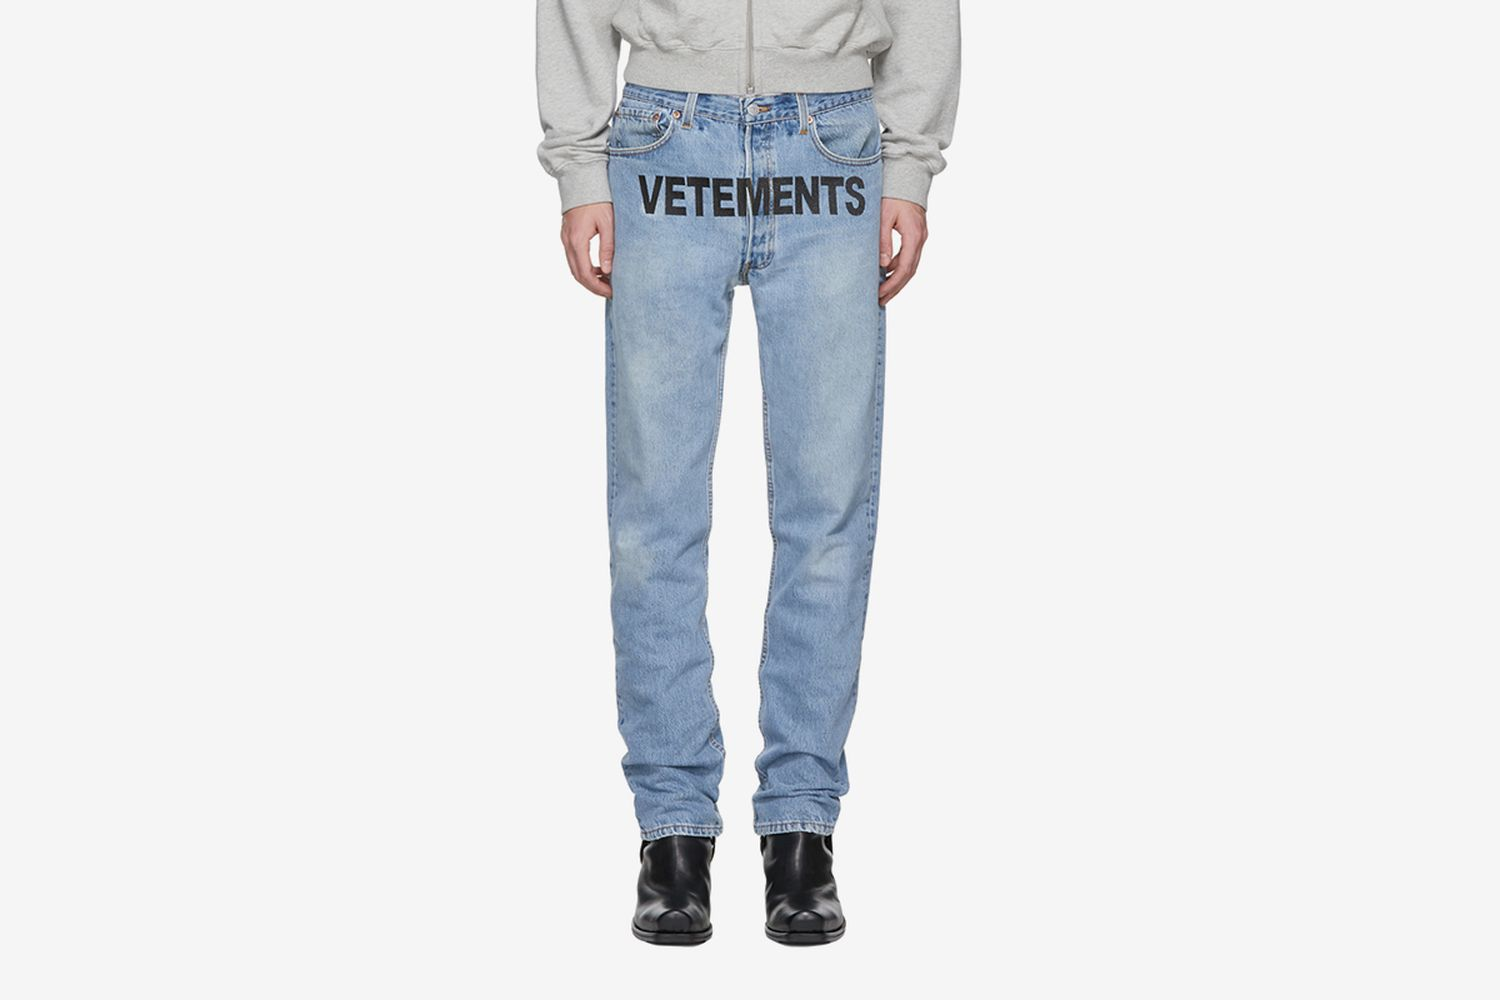 Reworked Jeans